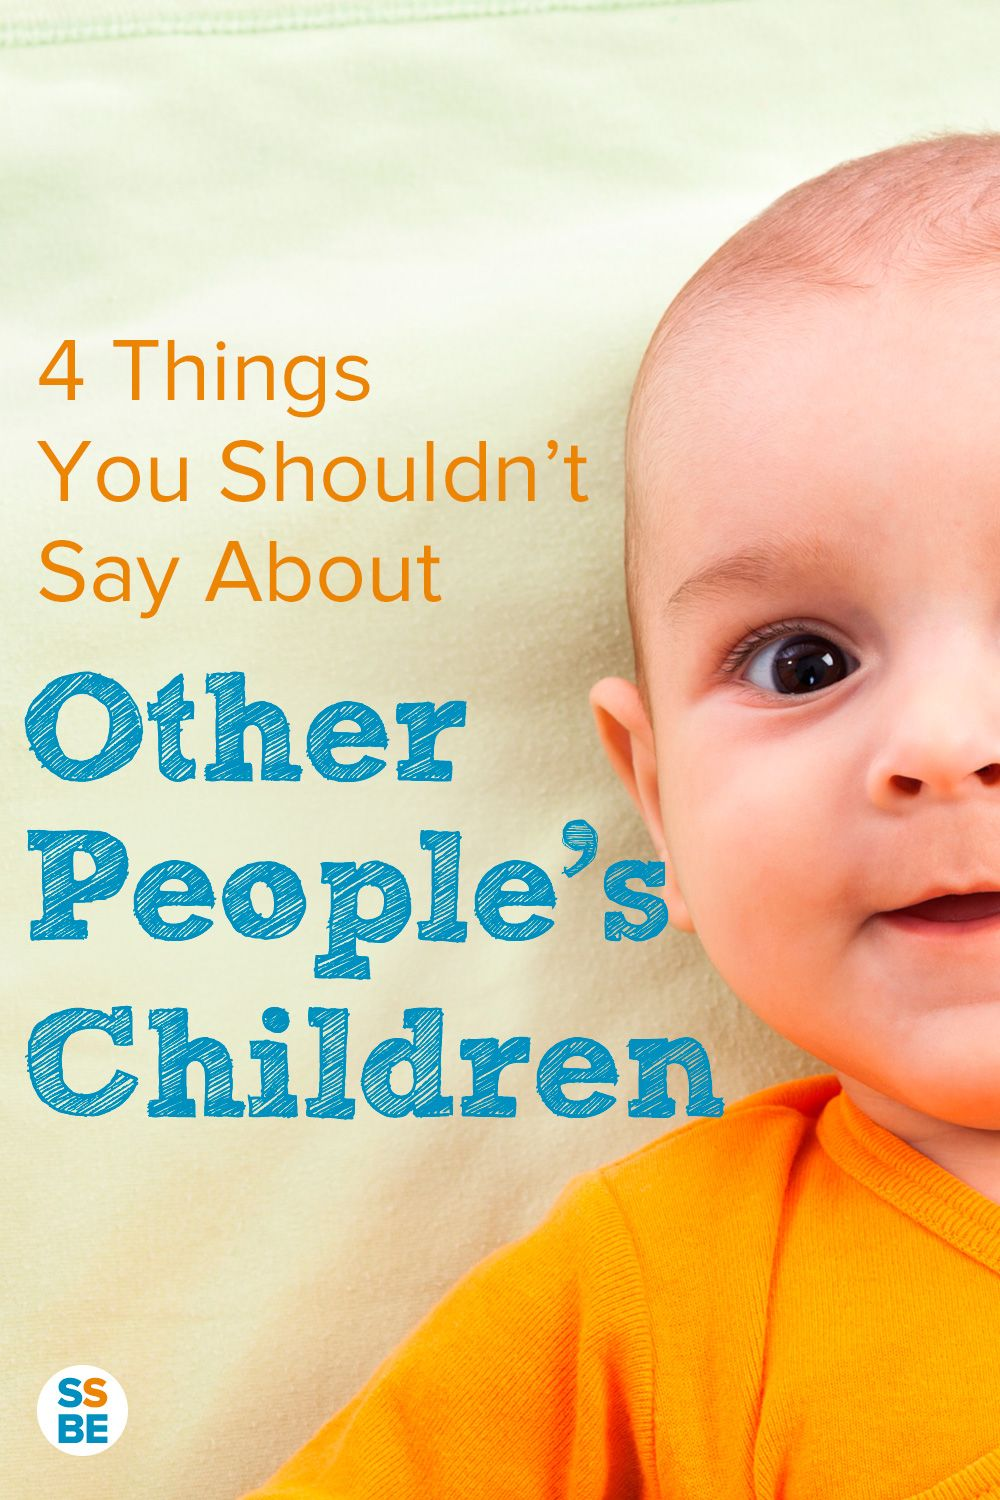 4 Things You Shouldn't Say about Other People's Children